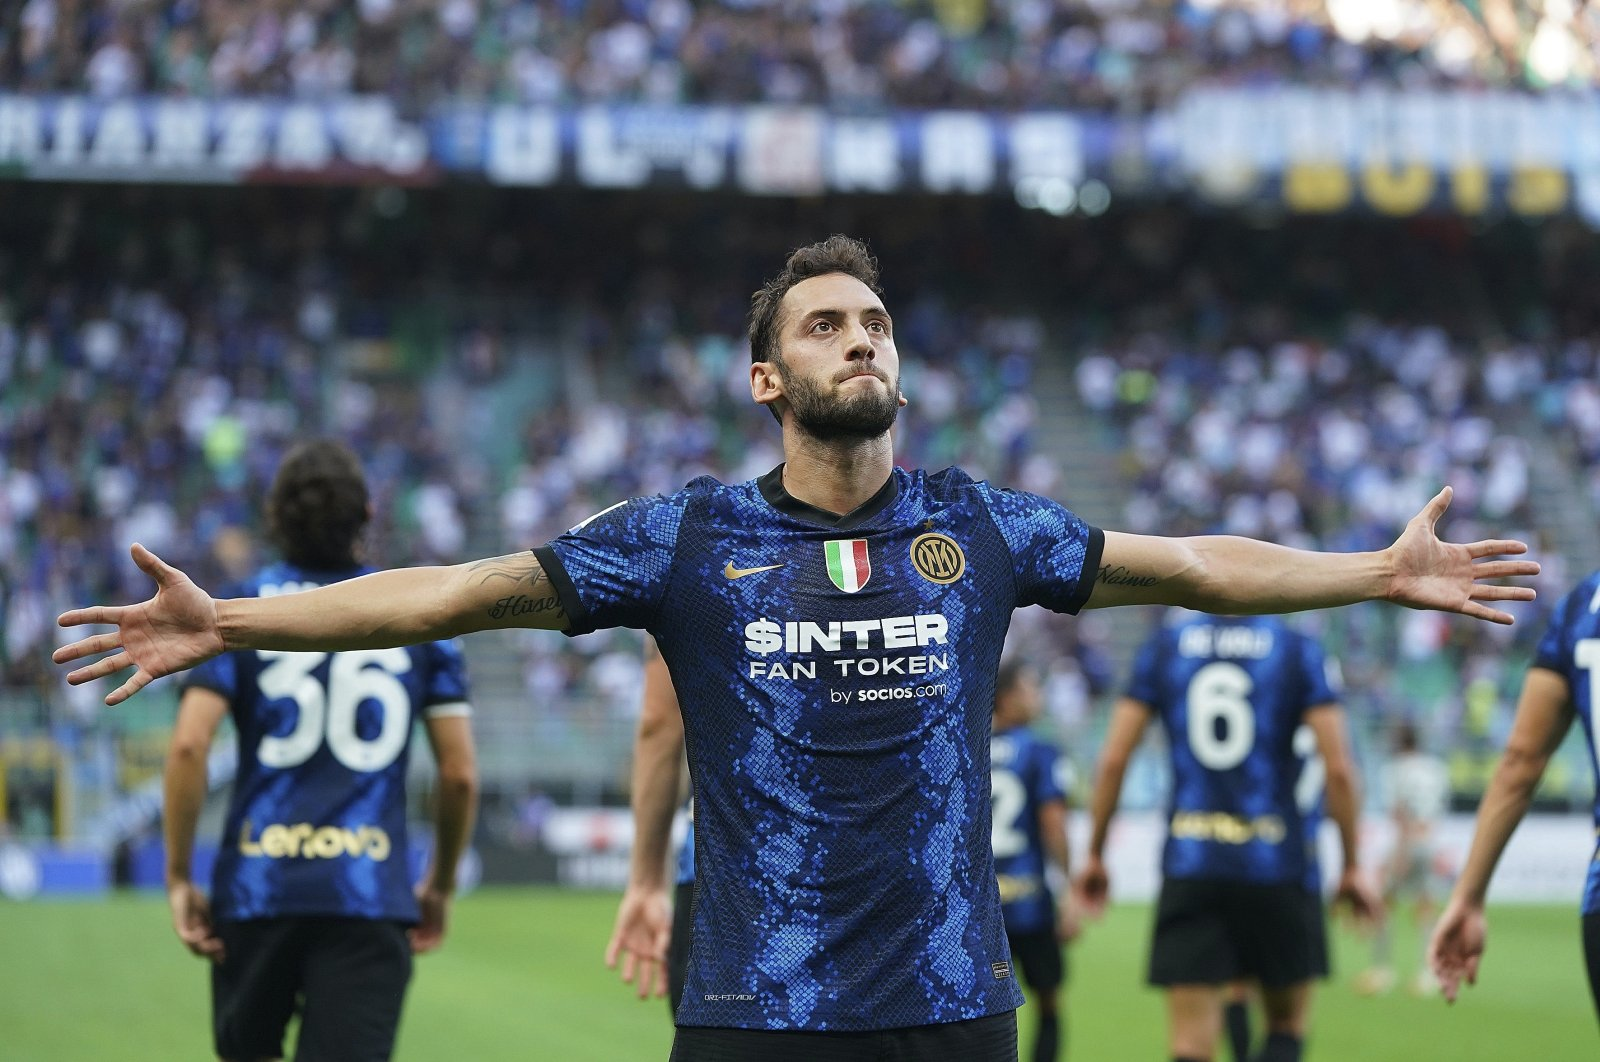 Inter Milan's Hakan Çalhanoğlu celebrates after scoring his side's 2nd goal in a Serie A match against Genoa at the San Siro, Milan, Italy, Aug. 21, 2021. (AP Photo)